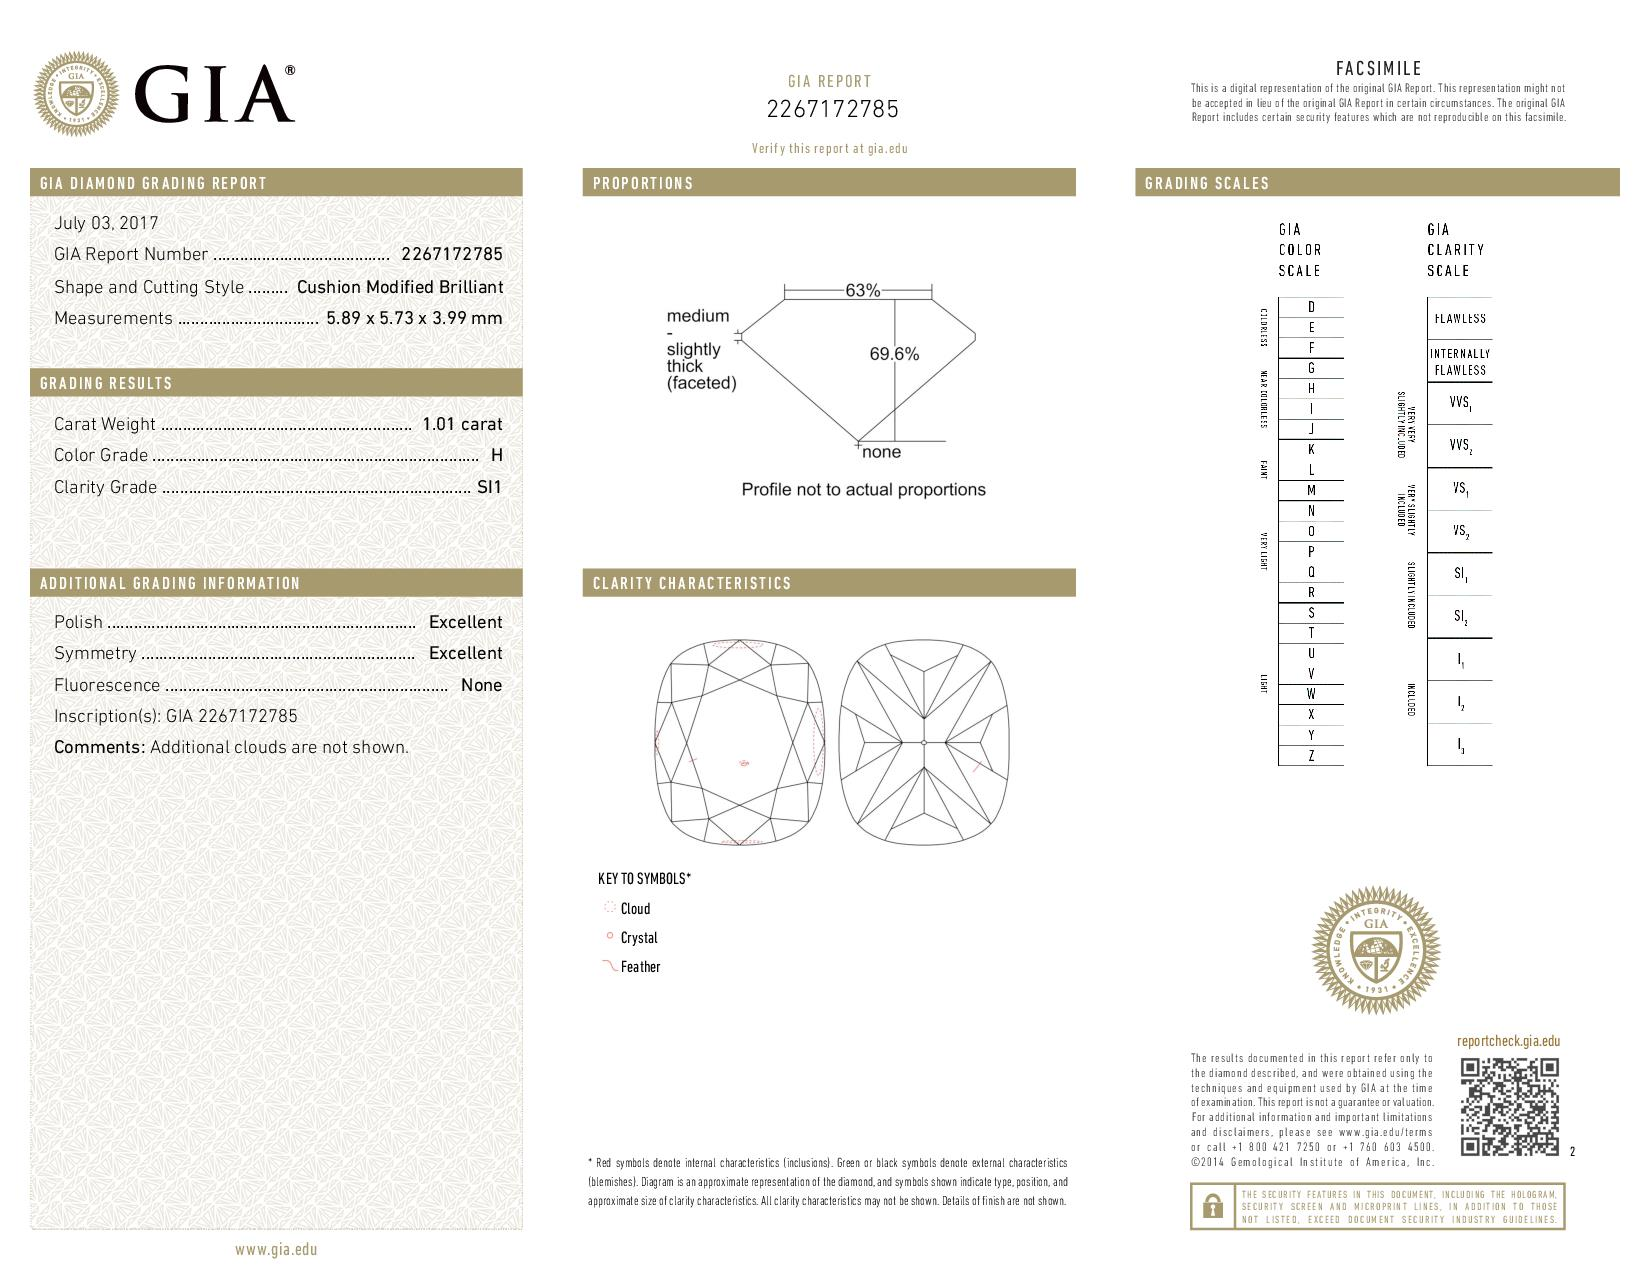 This is a 1.01 carat cushion shape, H color, SI1 clarity natural diamond accompanied by a GIA grading report.